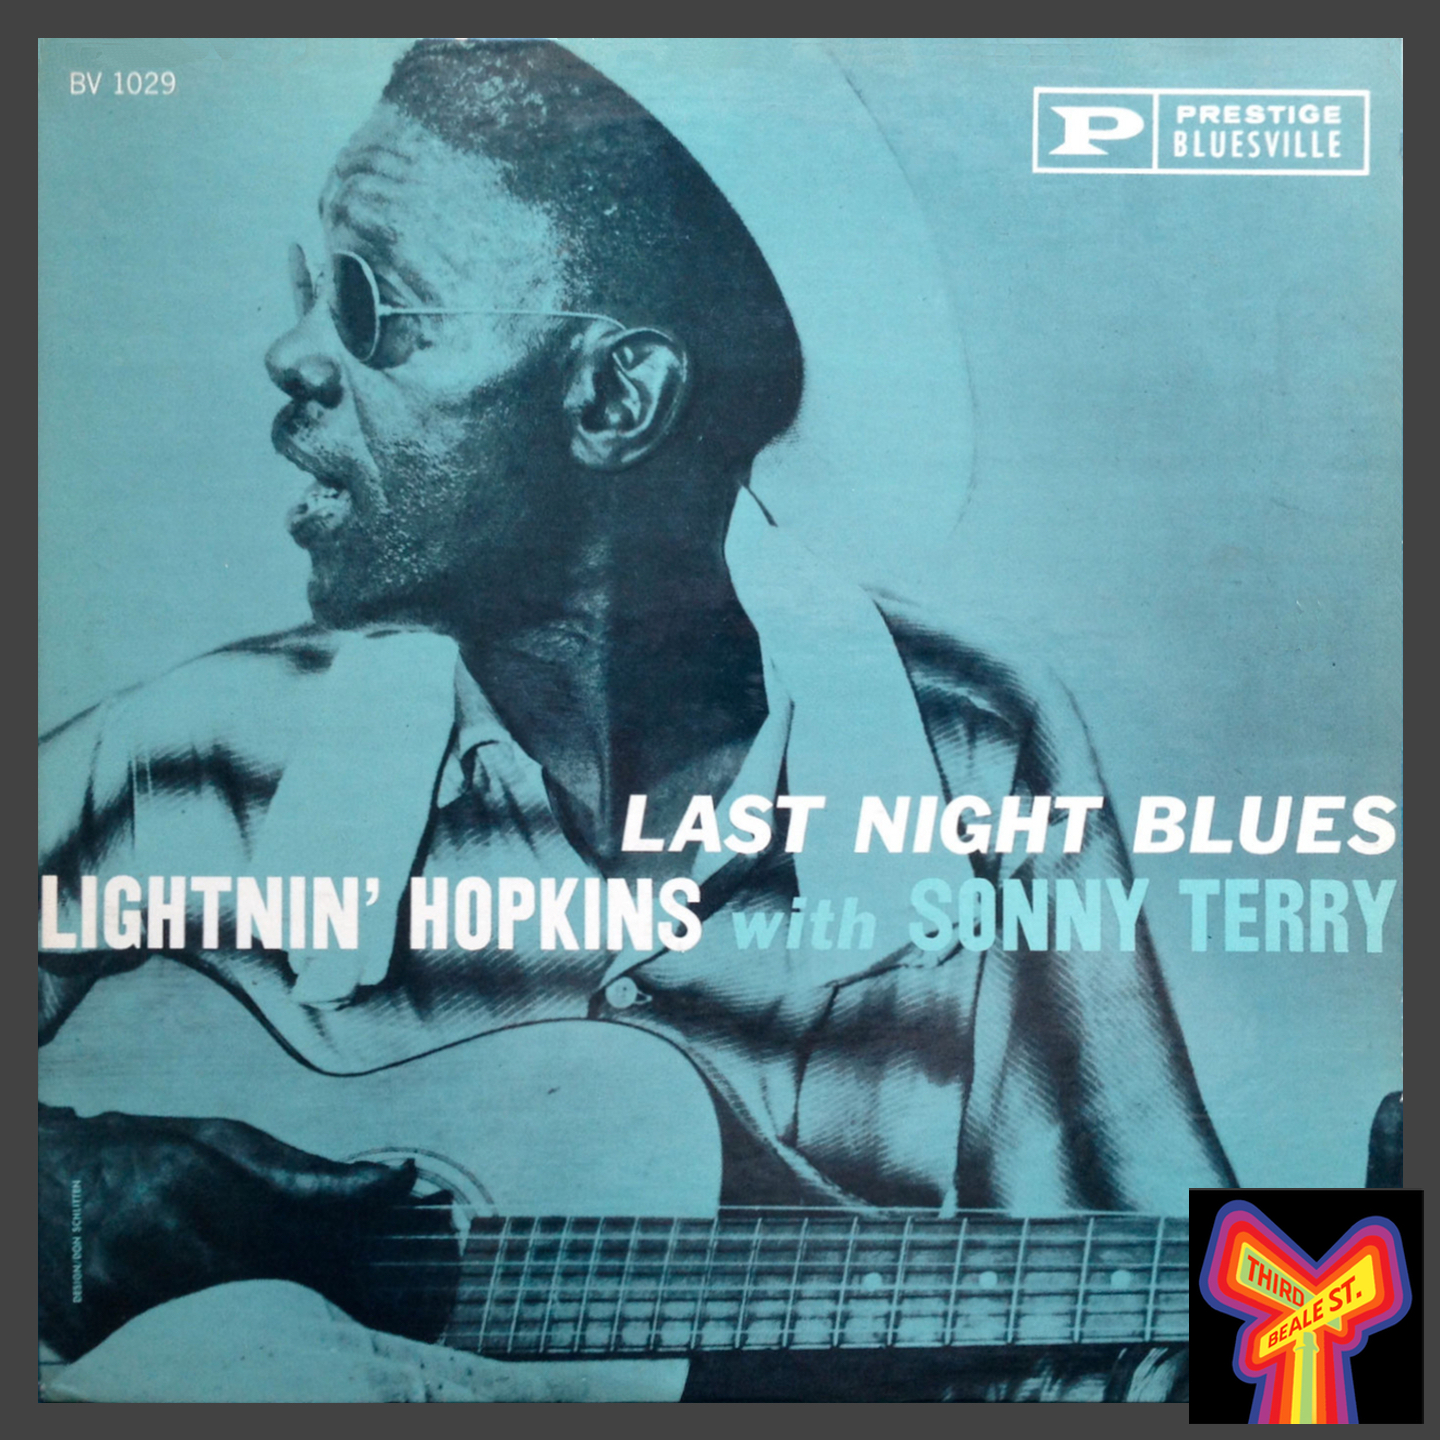 Caption: Just one of many LPs by Lightnin' Hopkins, whose extensive recordings made up a large portion of the Bluesville catalog.